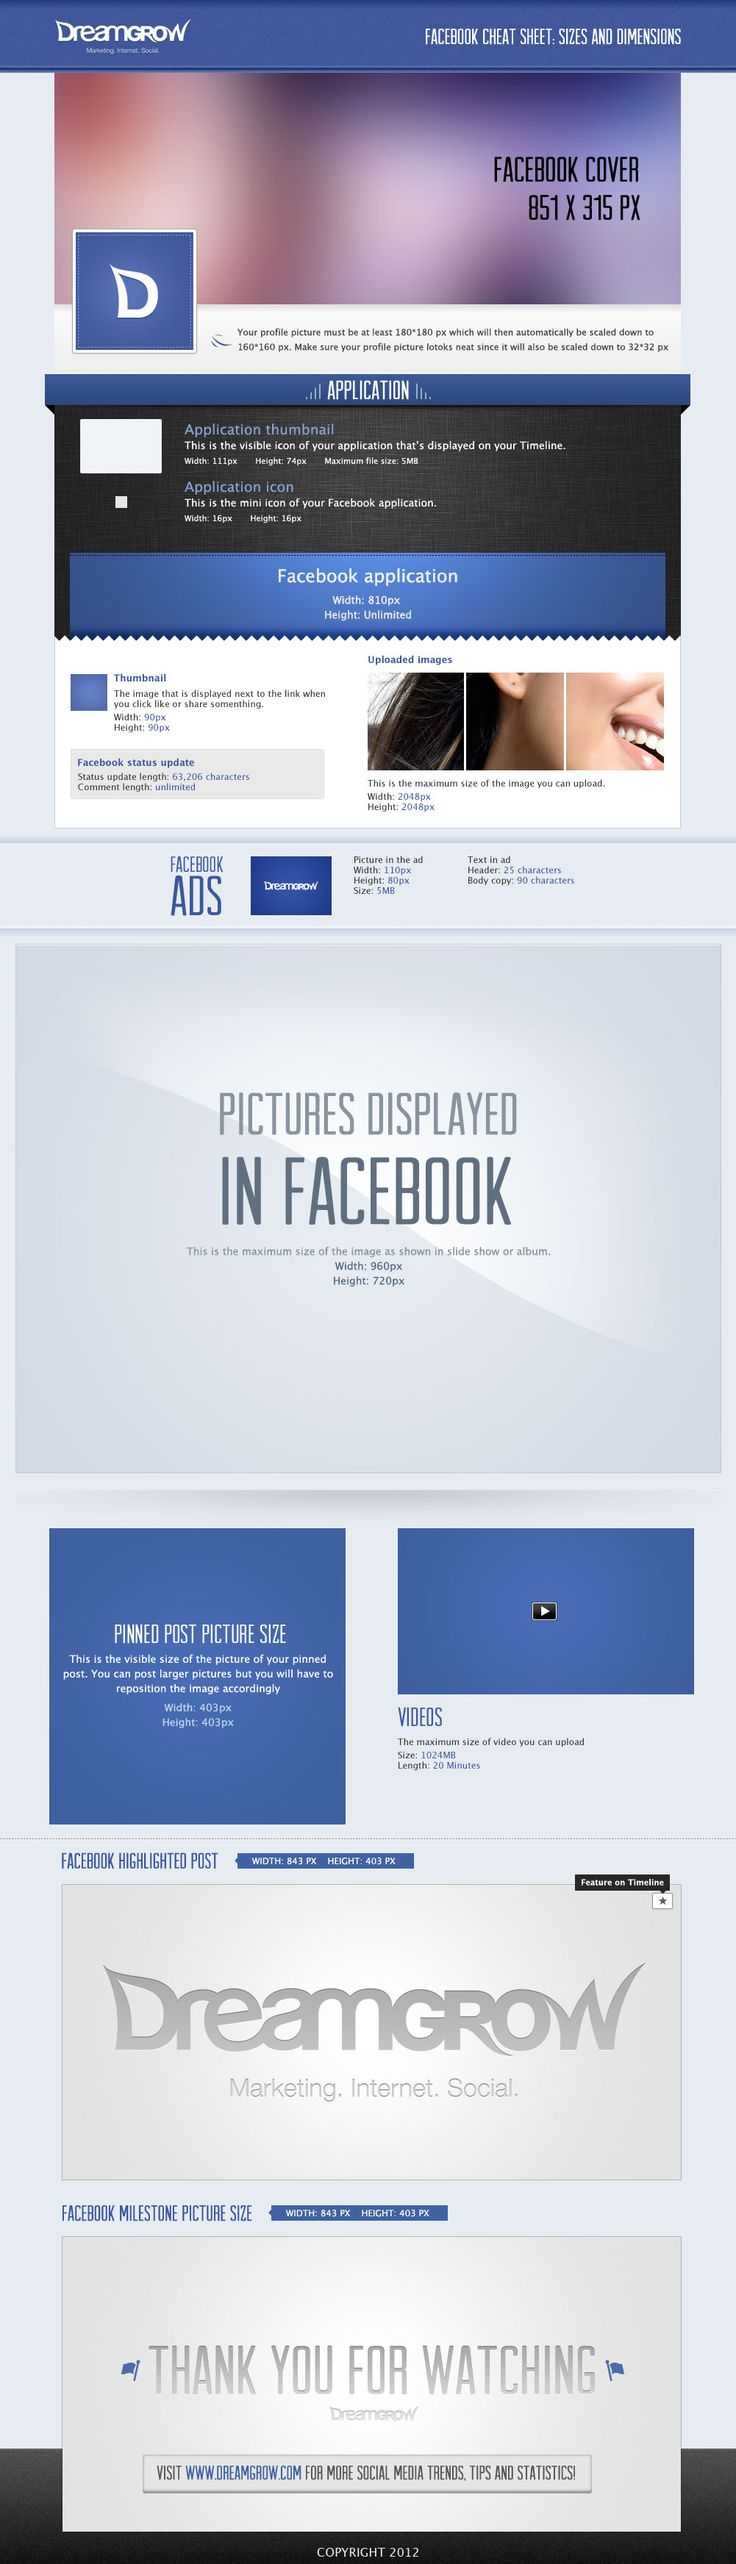 Facebook Cheat Sheet Sizes. #Infographic: Sheet Size, Website, Cheat Sheets, Social Media, Facebook Timeline, Covers Photos, Facebook Cheat, Socialmedia, Cheatsheet